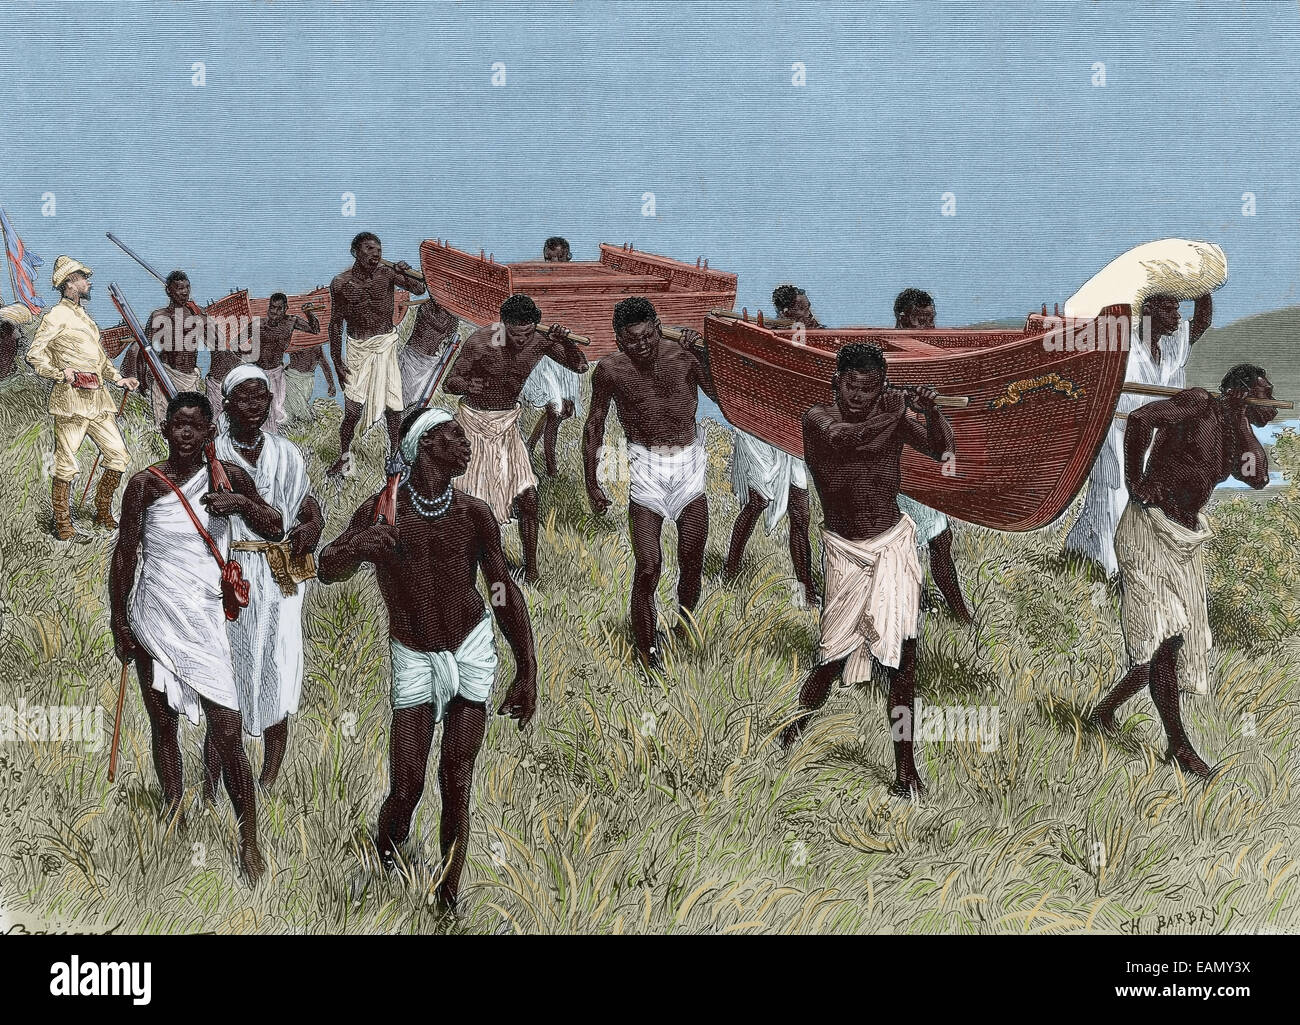 Henry Morton Stanley (1841-1904). British explorer. African porters carrying sections of Lady Alice boat. Engraving. - Stock Image